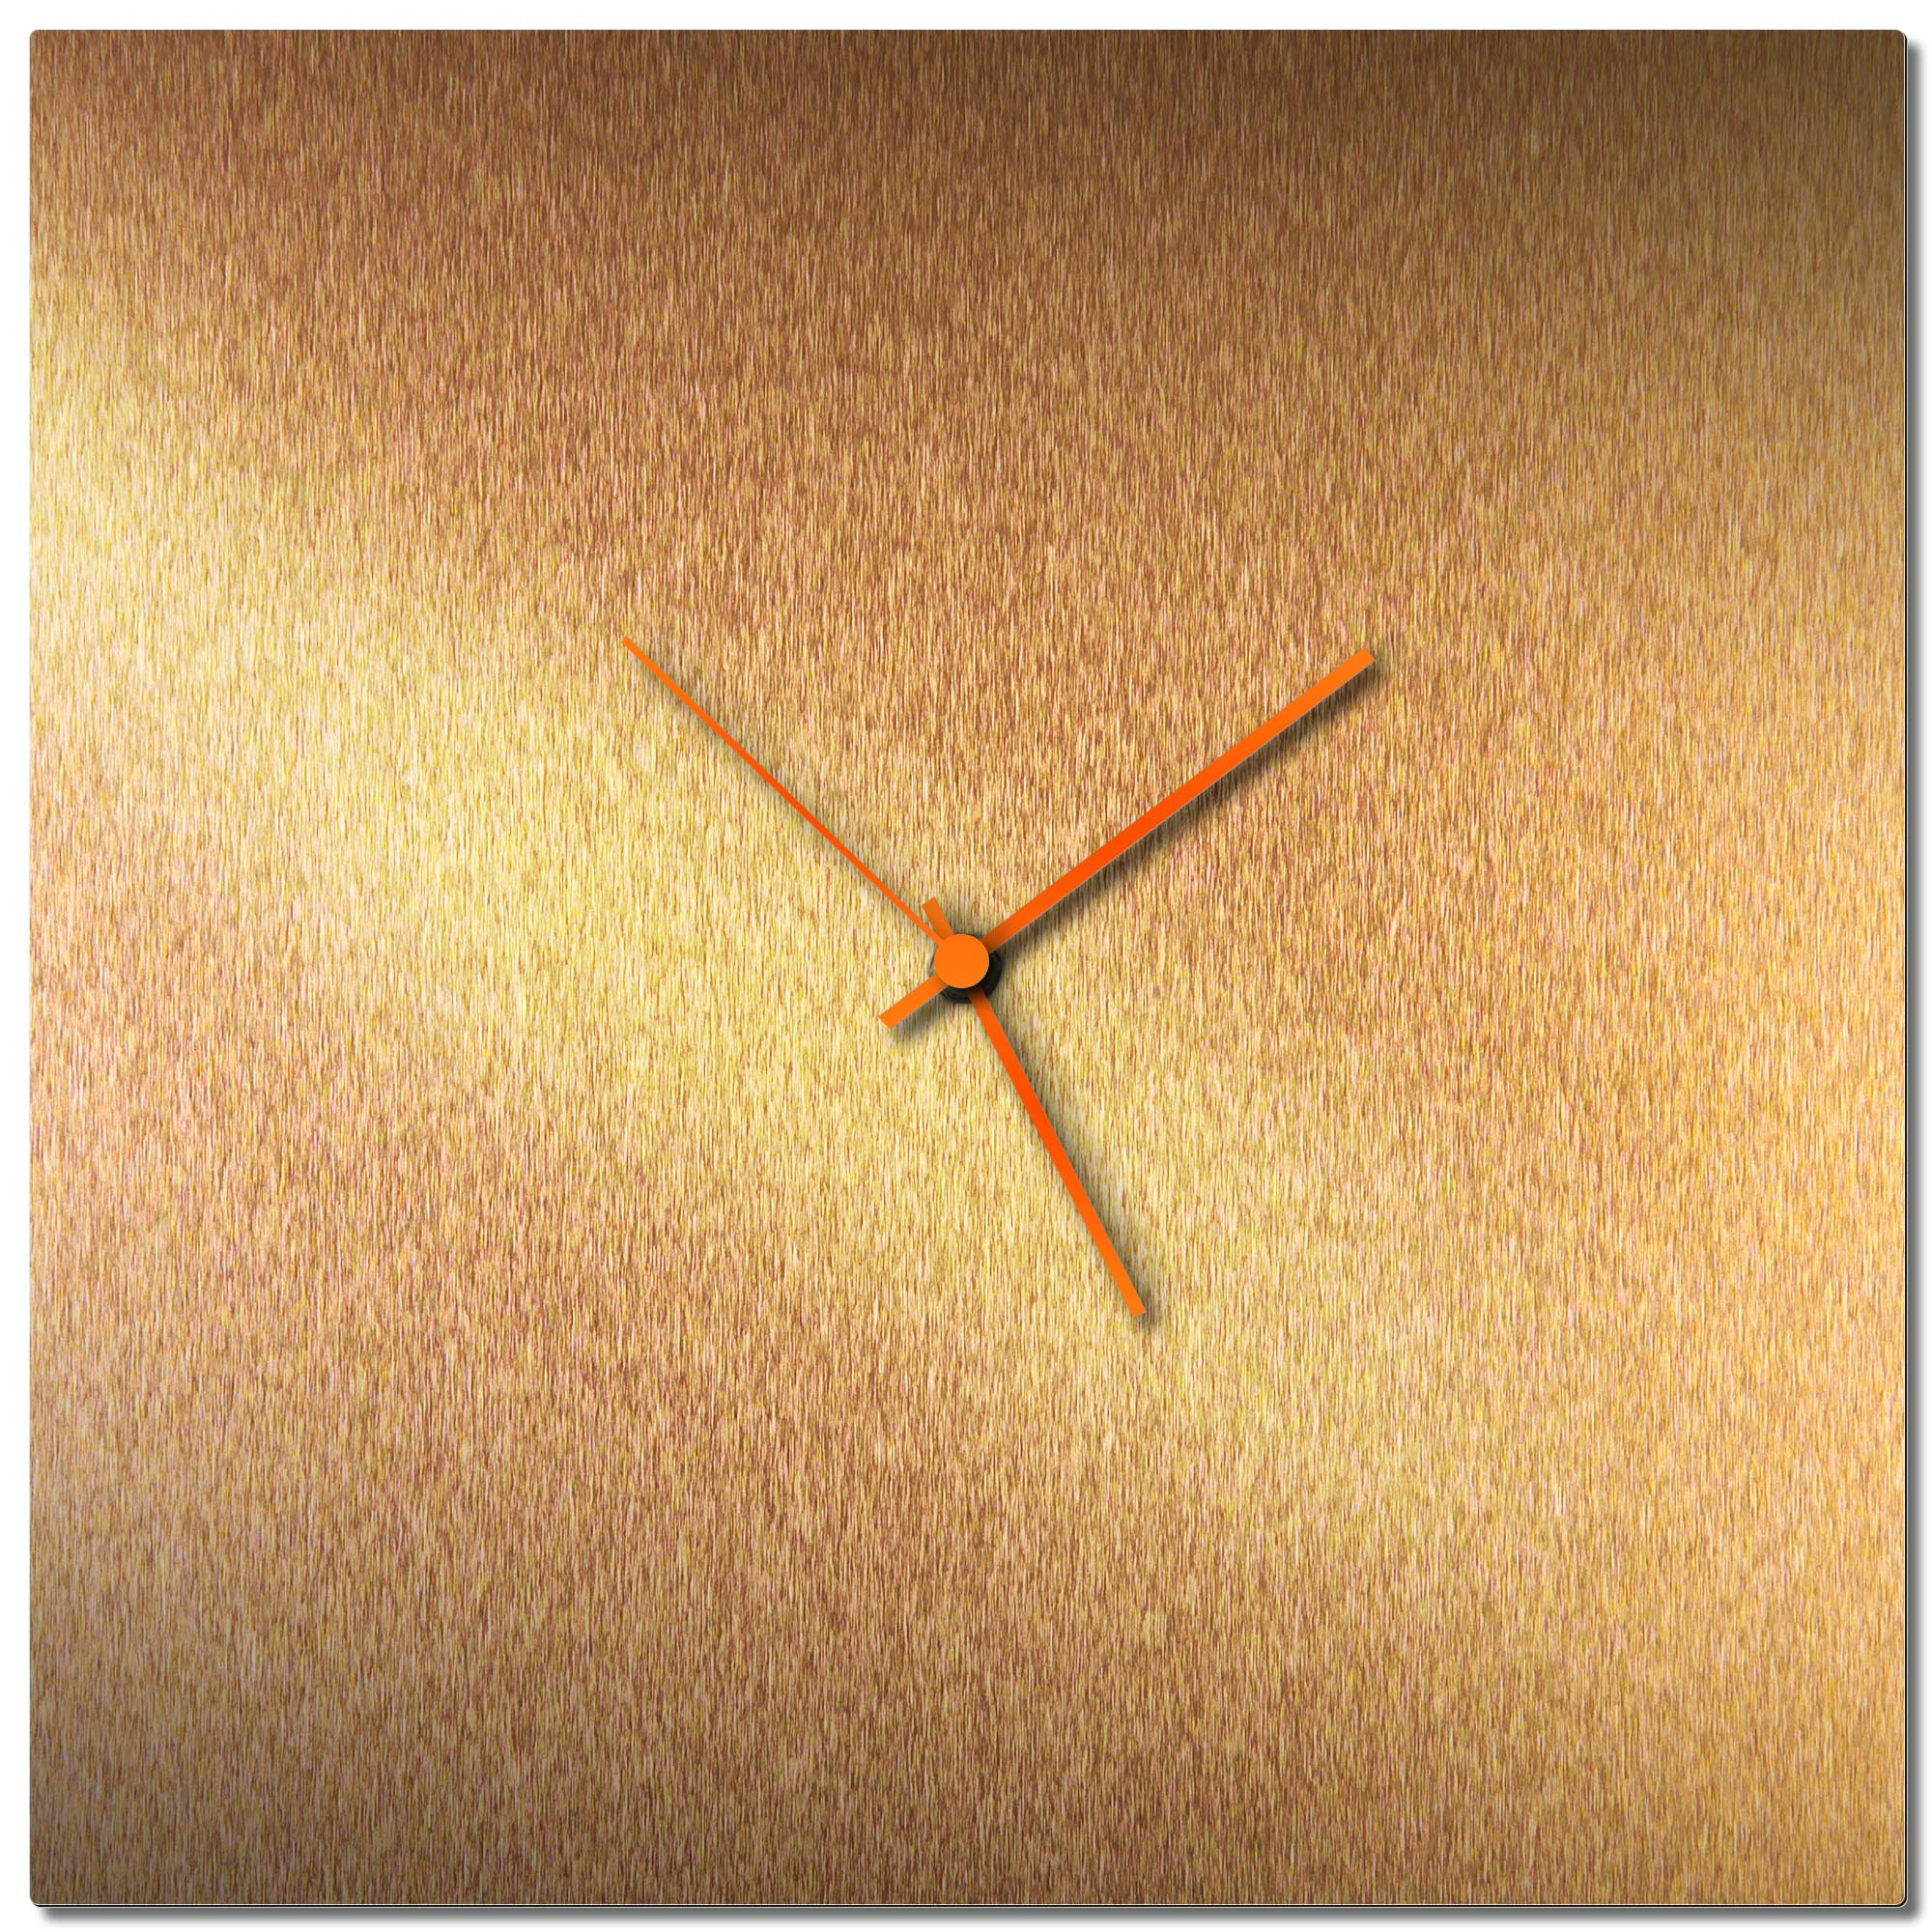 Adam Schwoeppe 'Bronzesmith Square Clock Orange' Midcentury Modern Style Wall Clock